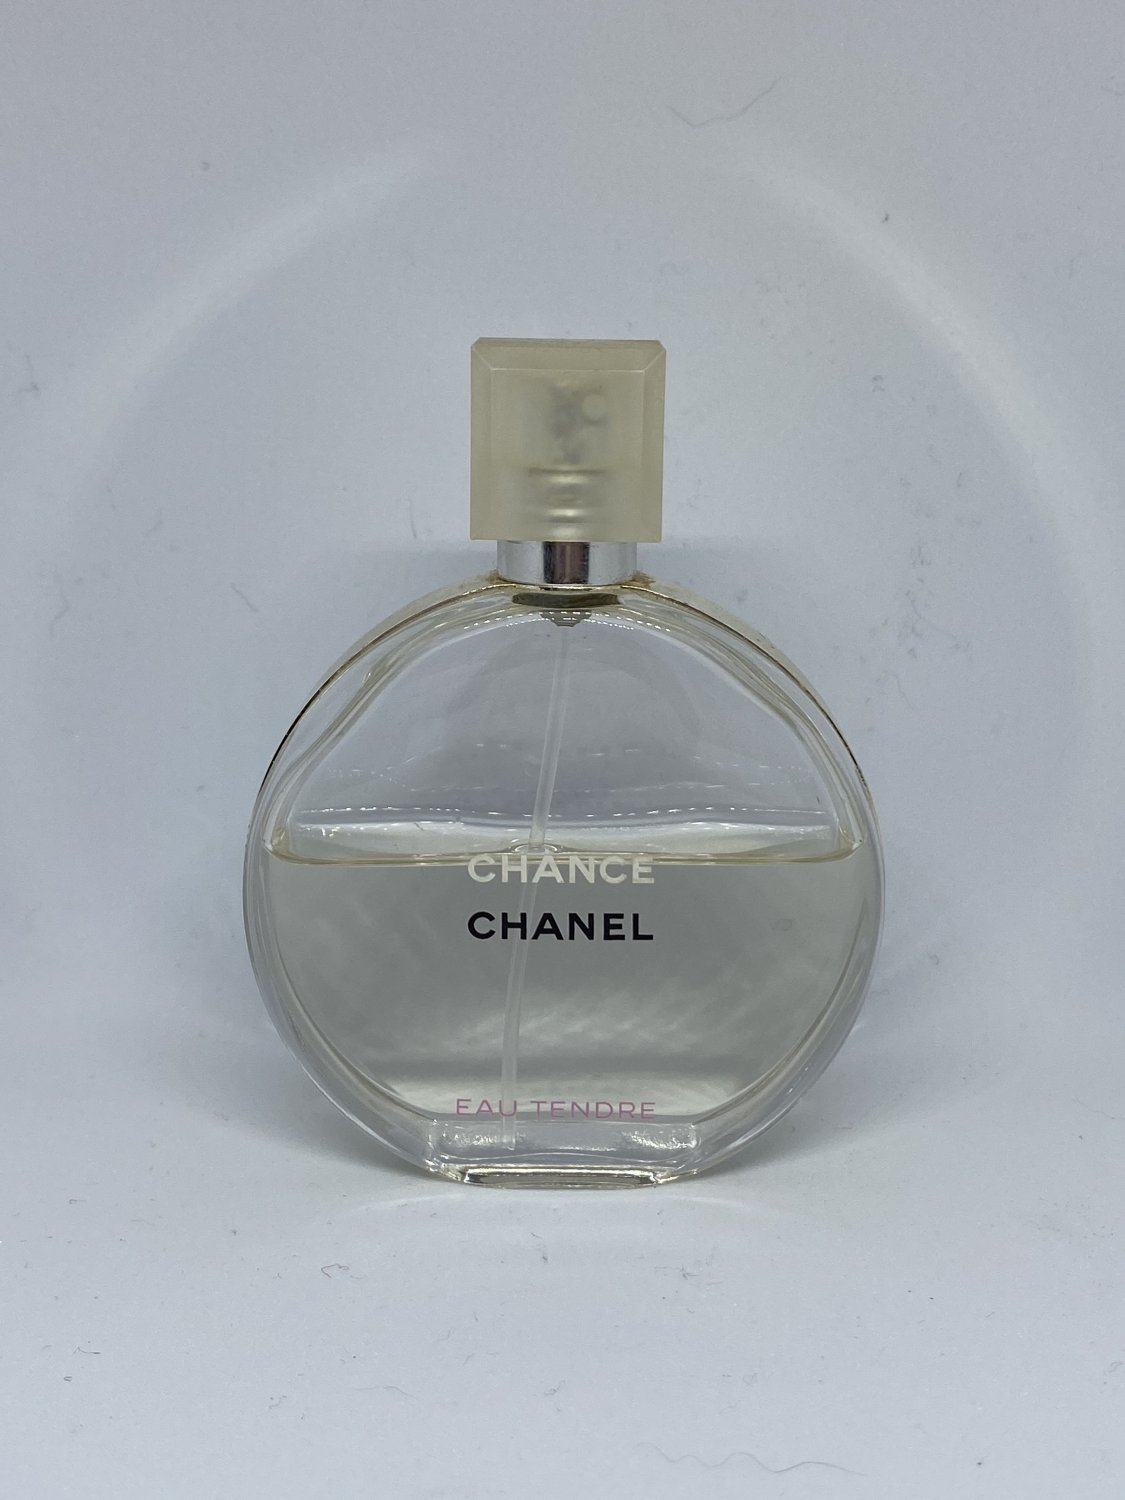 Chance by Chanel Eau Tendre EDT Fragrance for Women 1.7 oz Perfume